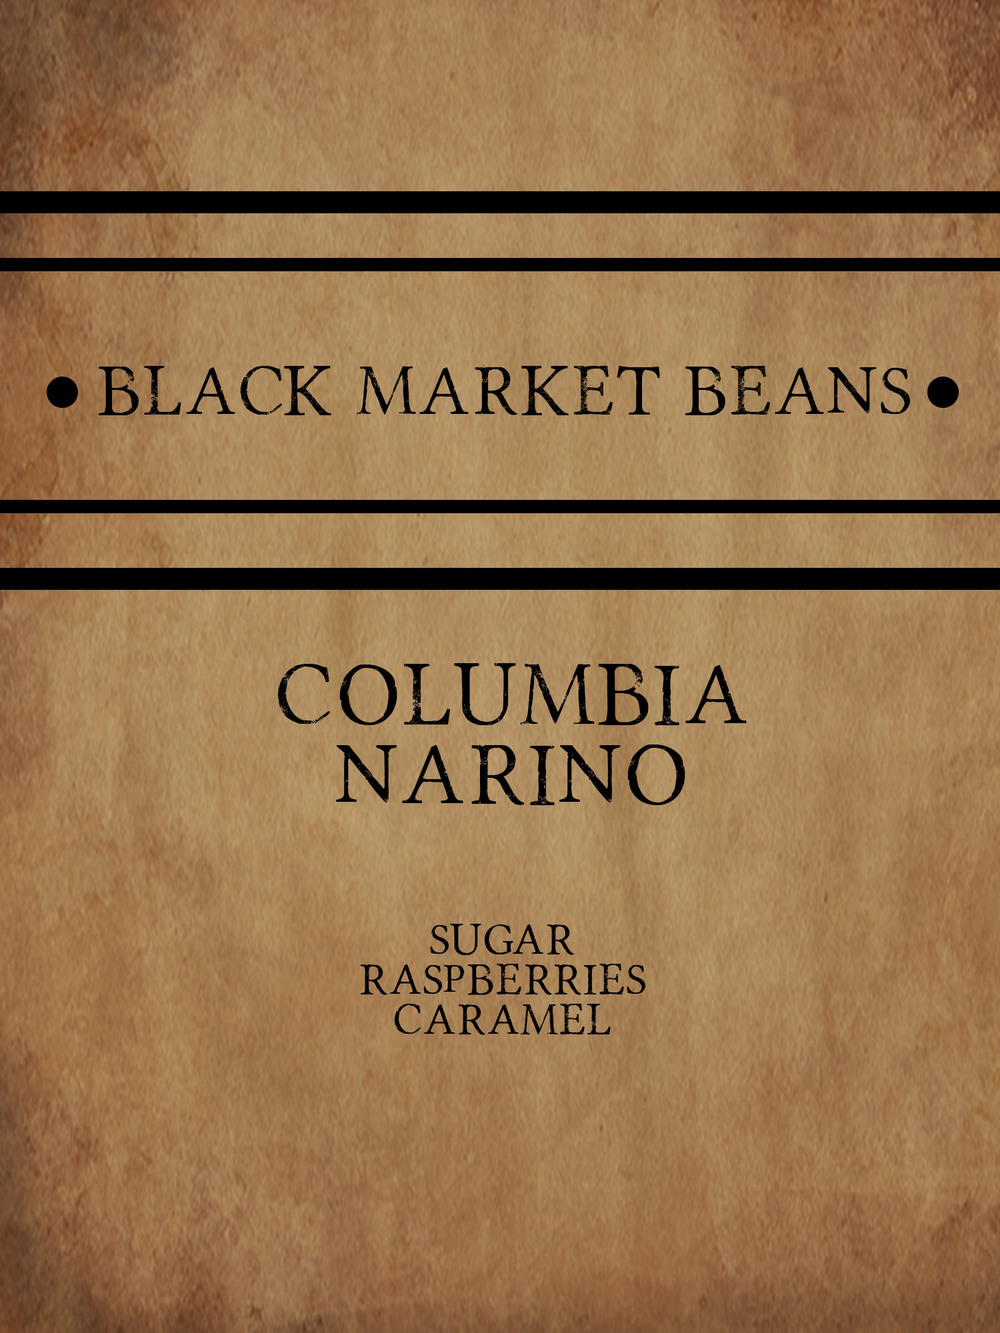 coffee_columbia_narino.jpg